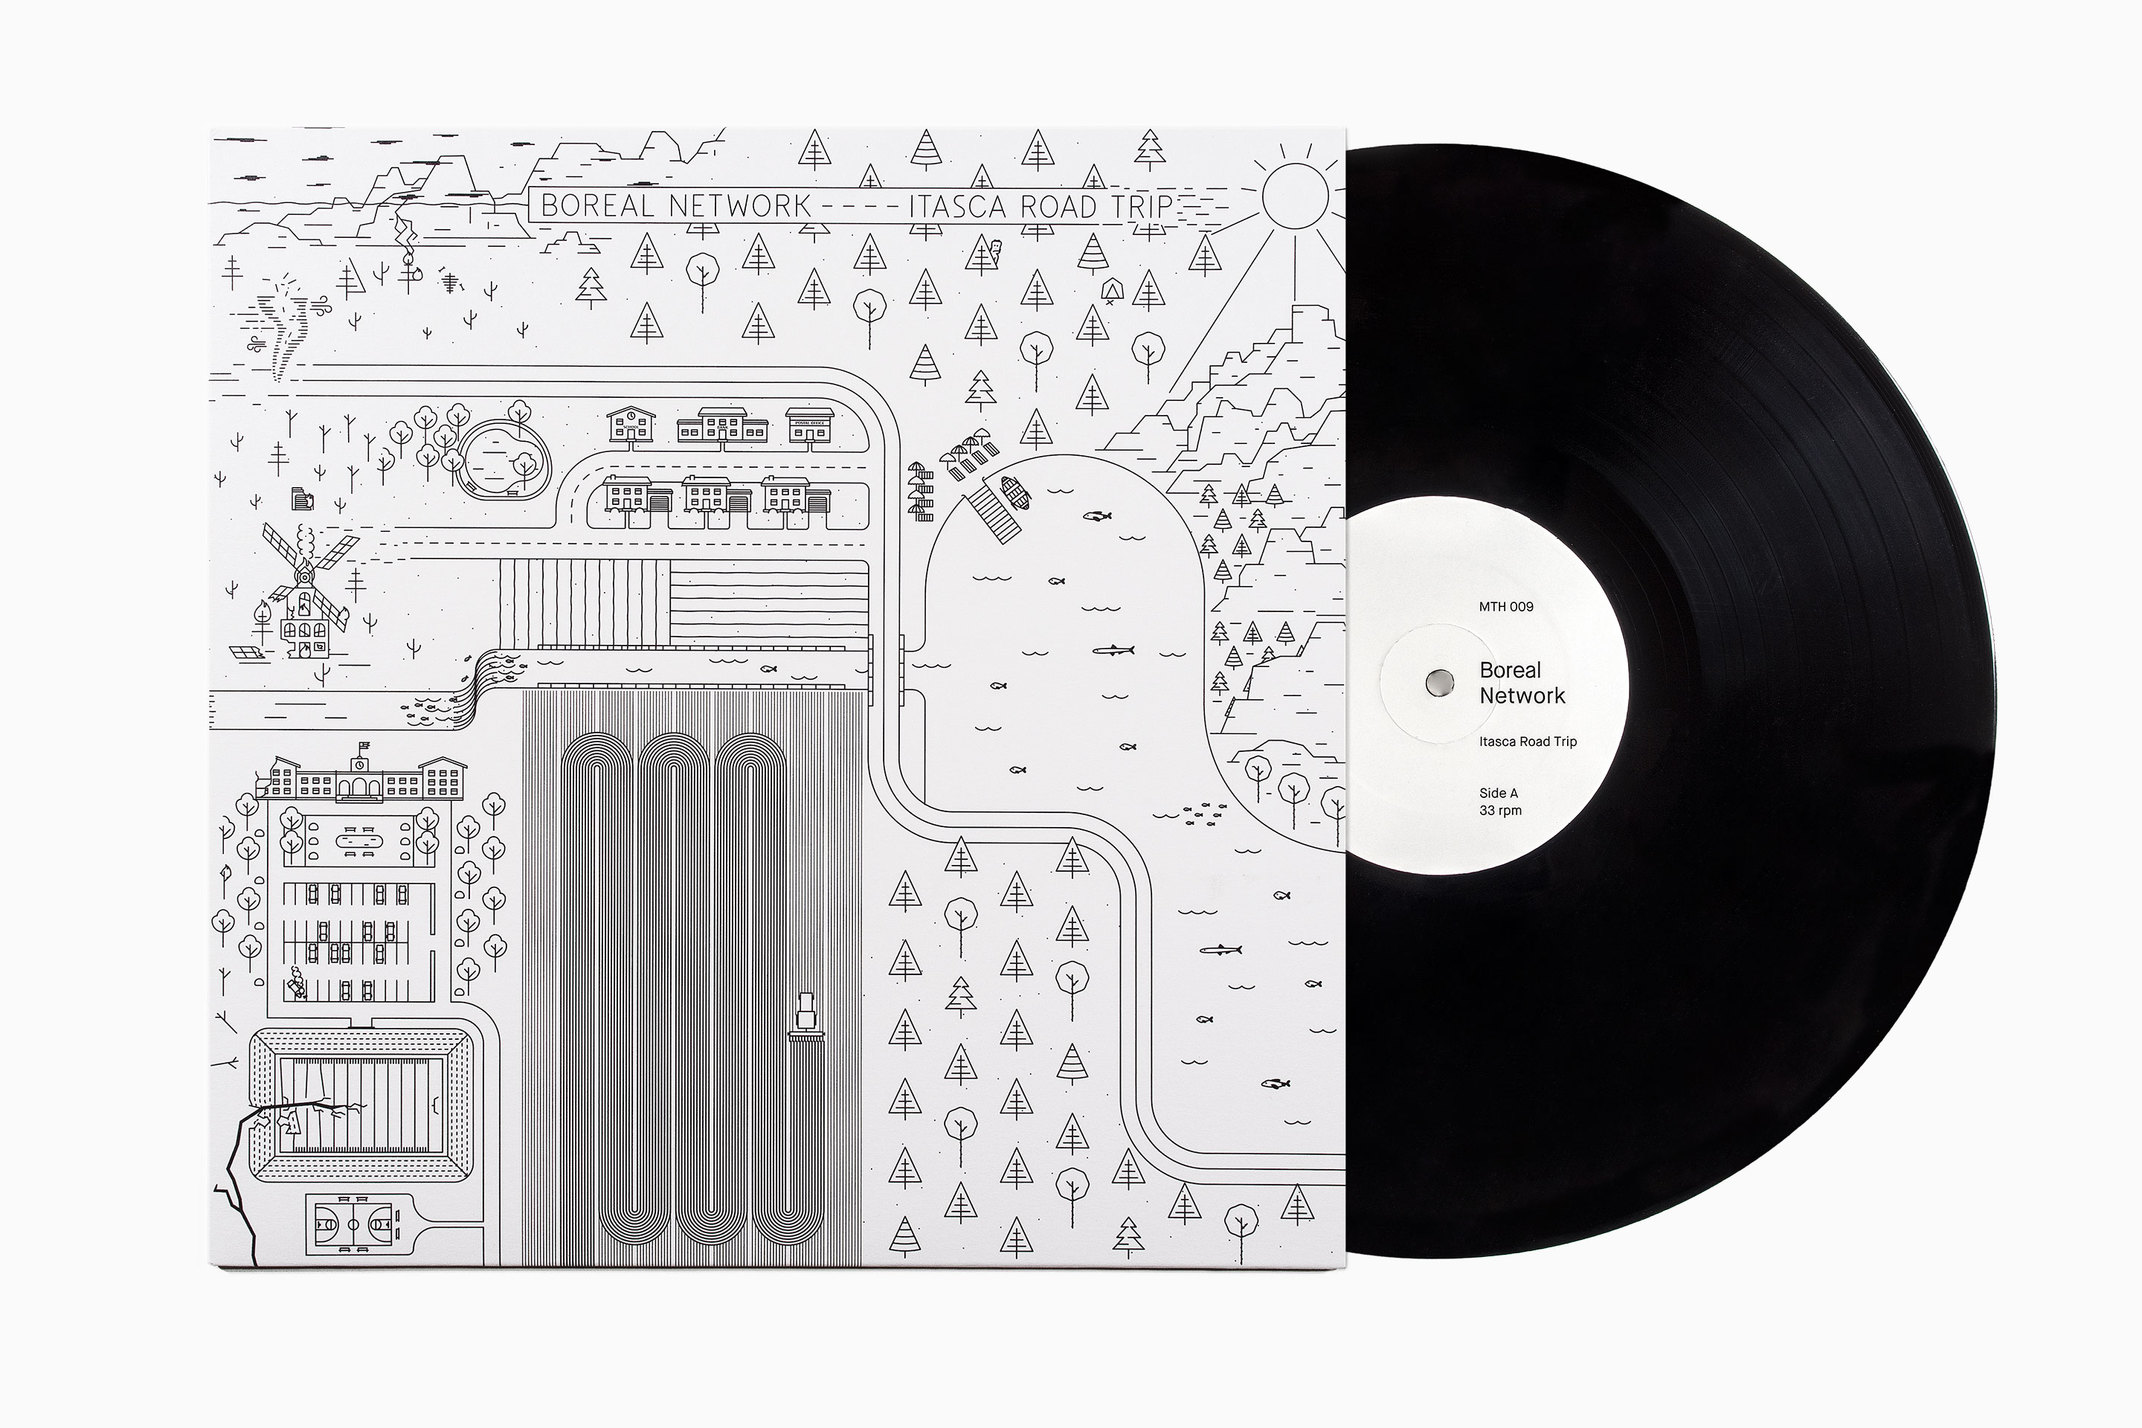 Illustrated record sleeve for Itasca Road Trip by Boreal Network, designed by Bedow, Sweden